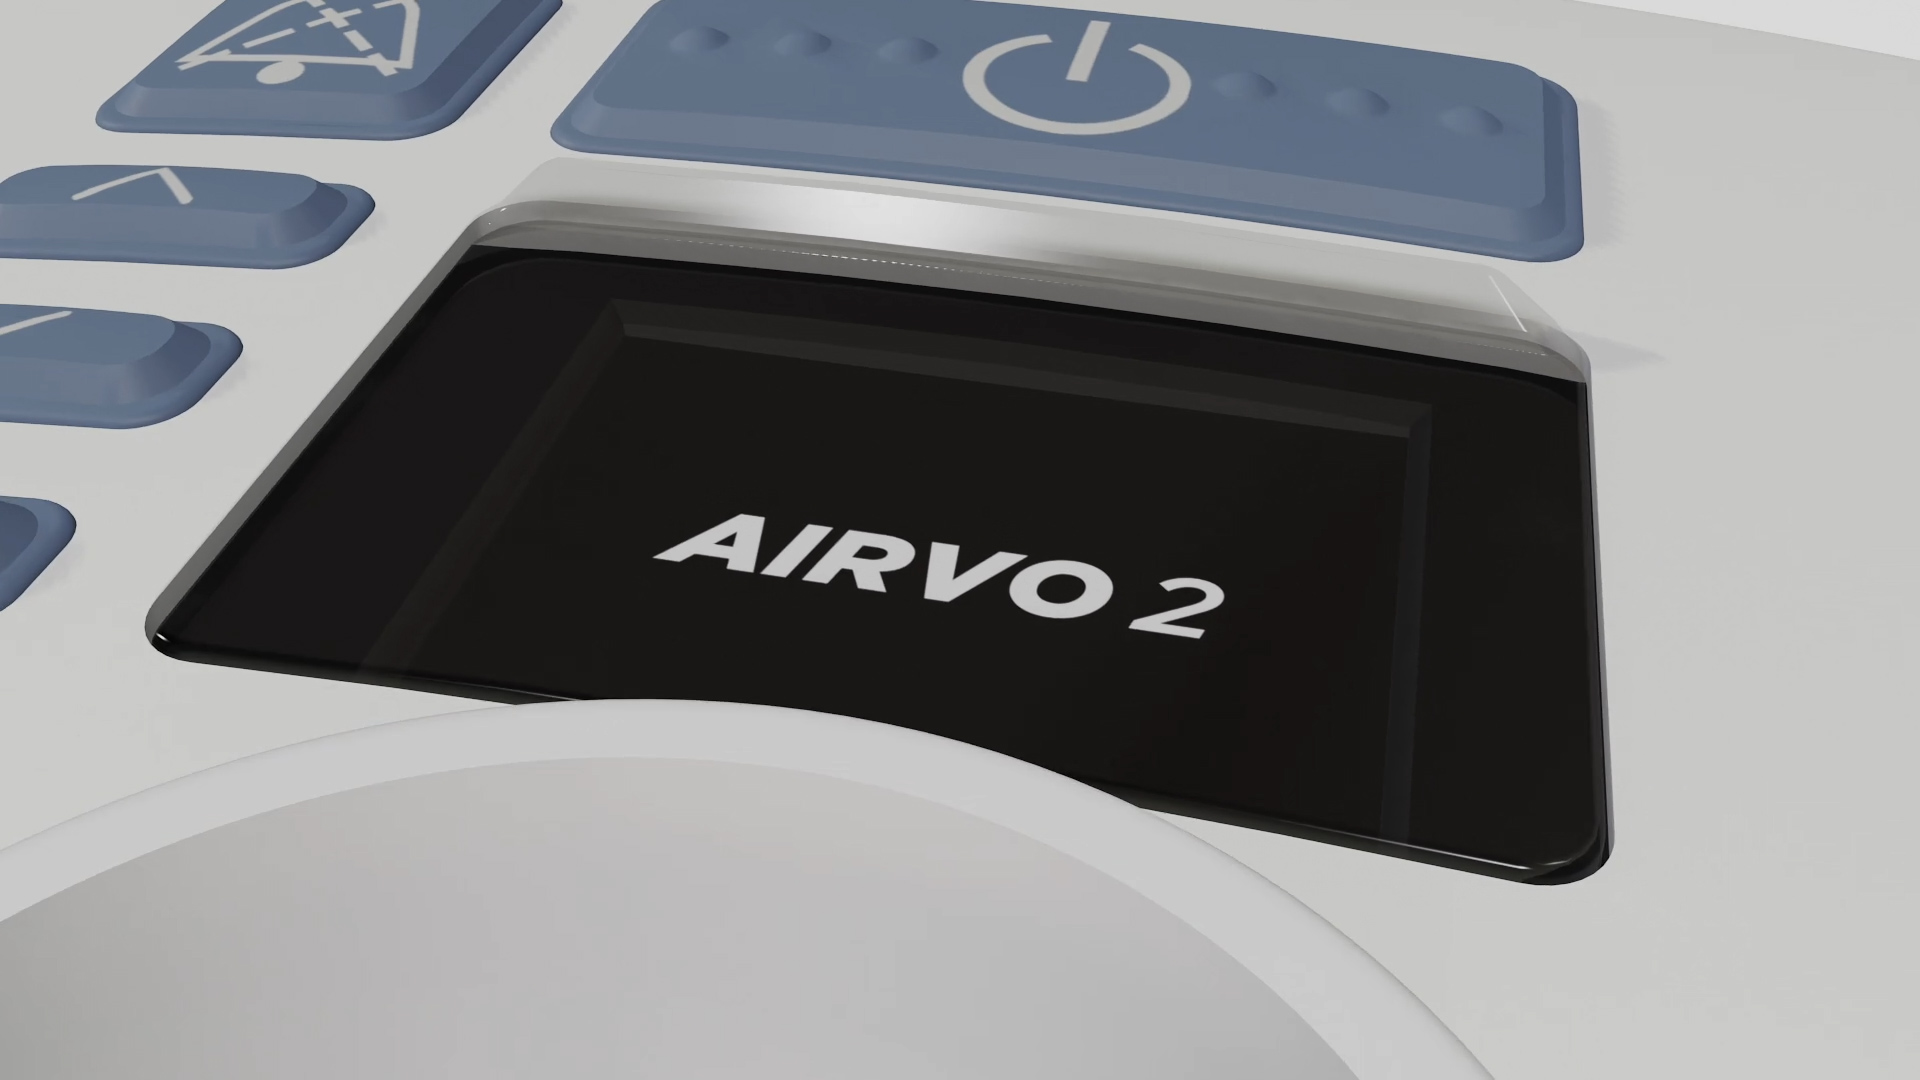 Introducing Airvo 2